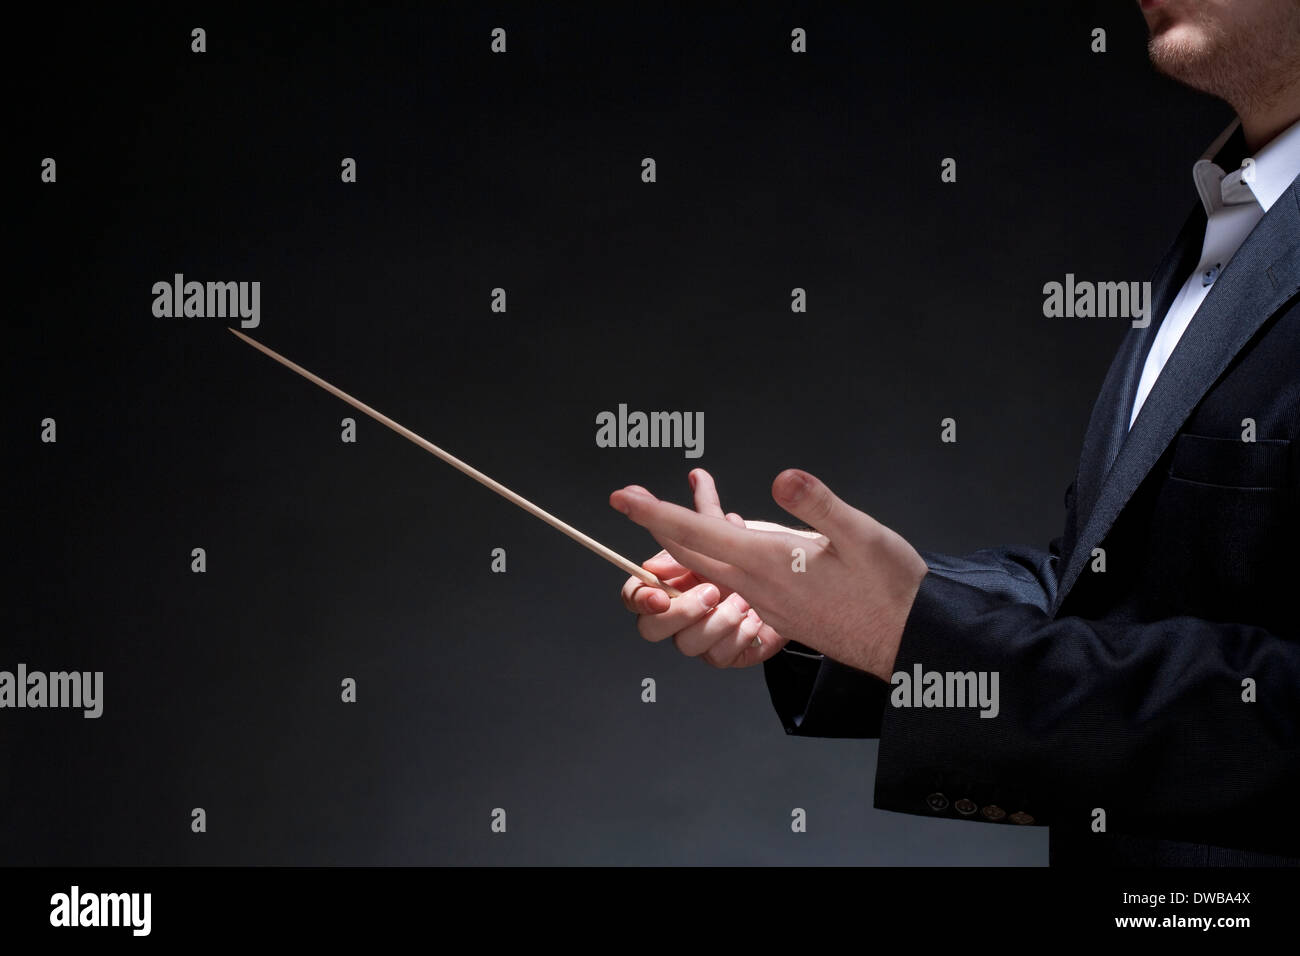 Hands of Conductor with Baton Leading Orchestra - Stock Image